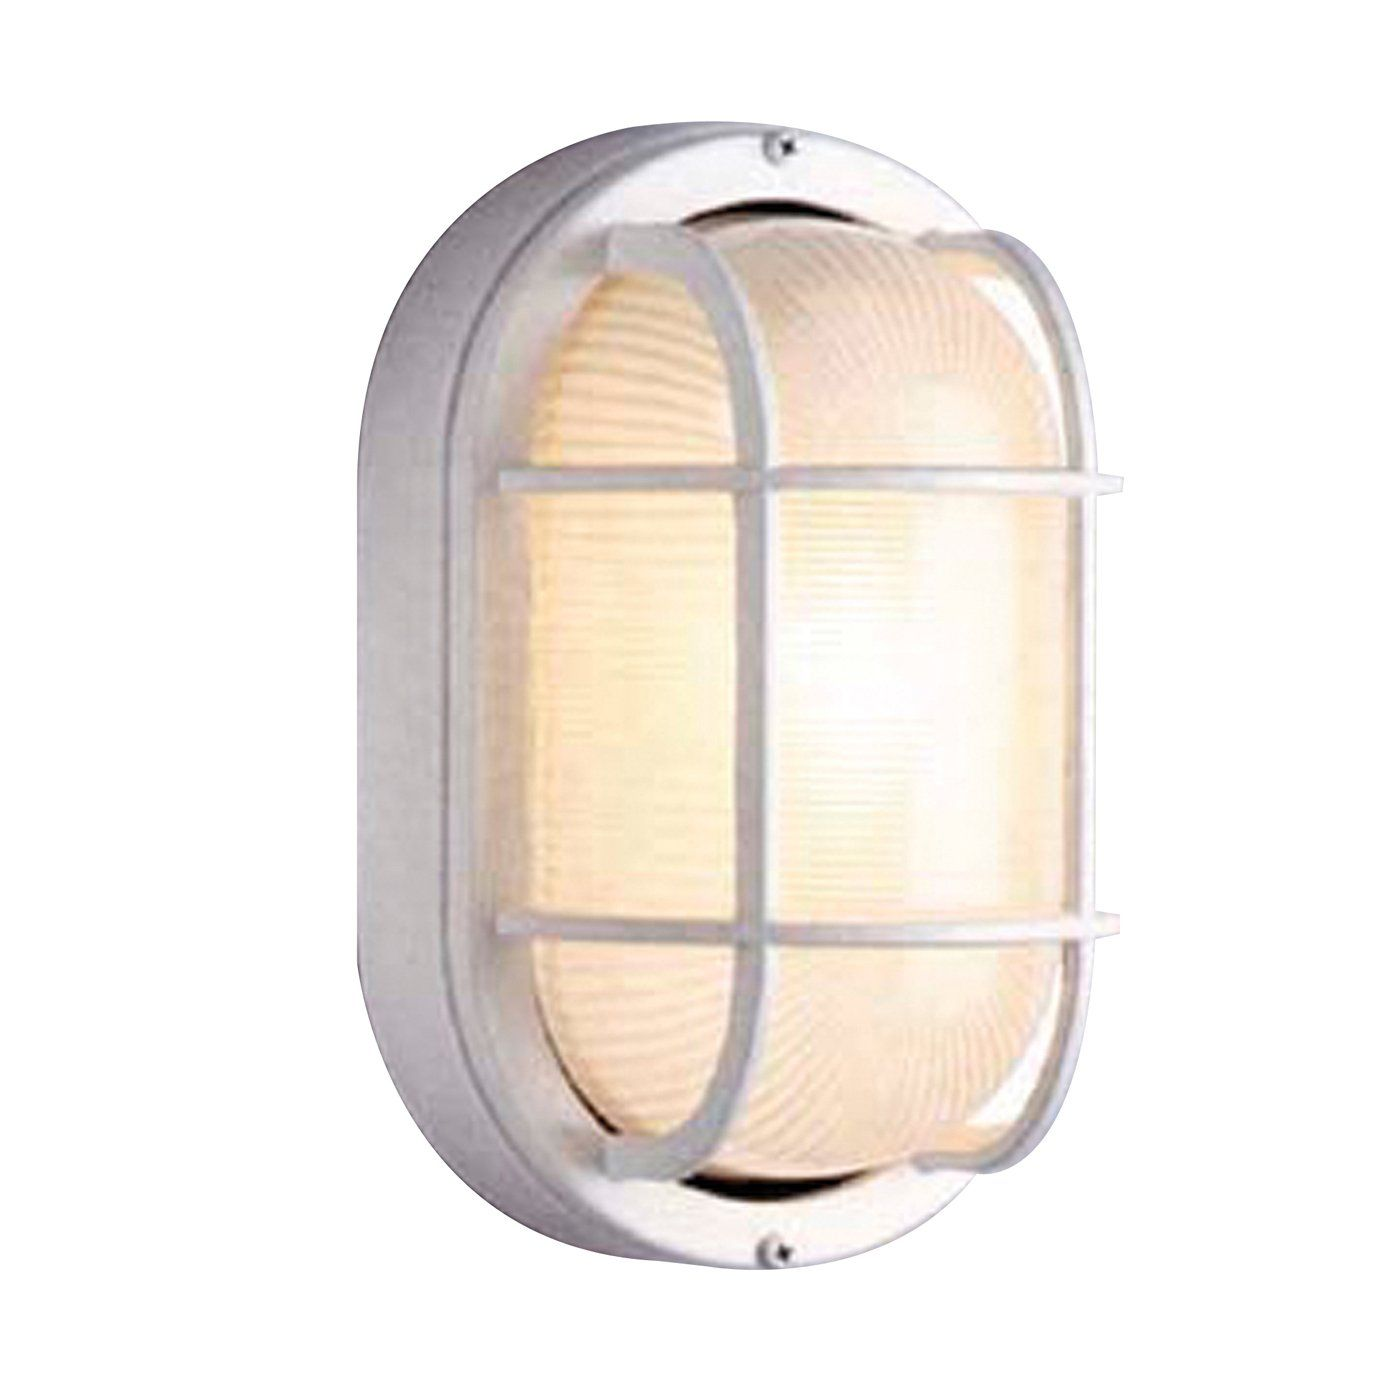 All Fit Tr41005 Wht Oval Deck Outdoor Sconce White 21 92 Outdoor Light Fixtures Bulkhead Light Trans Globe Lighting